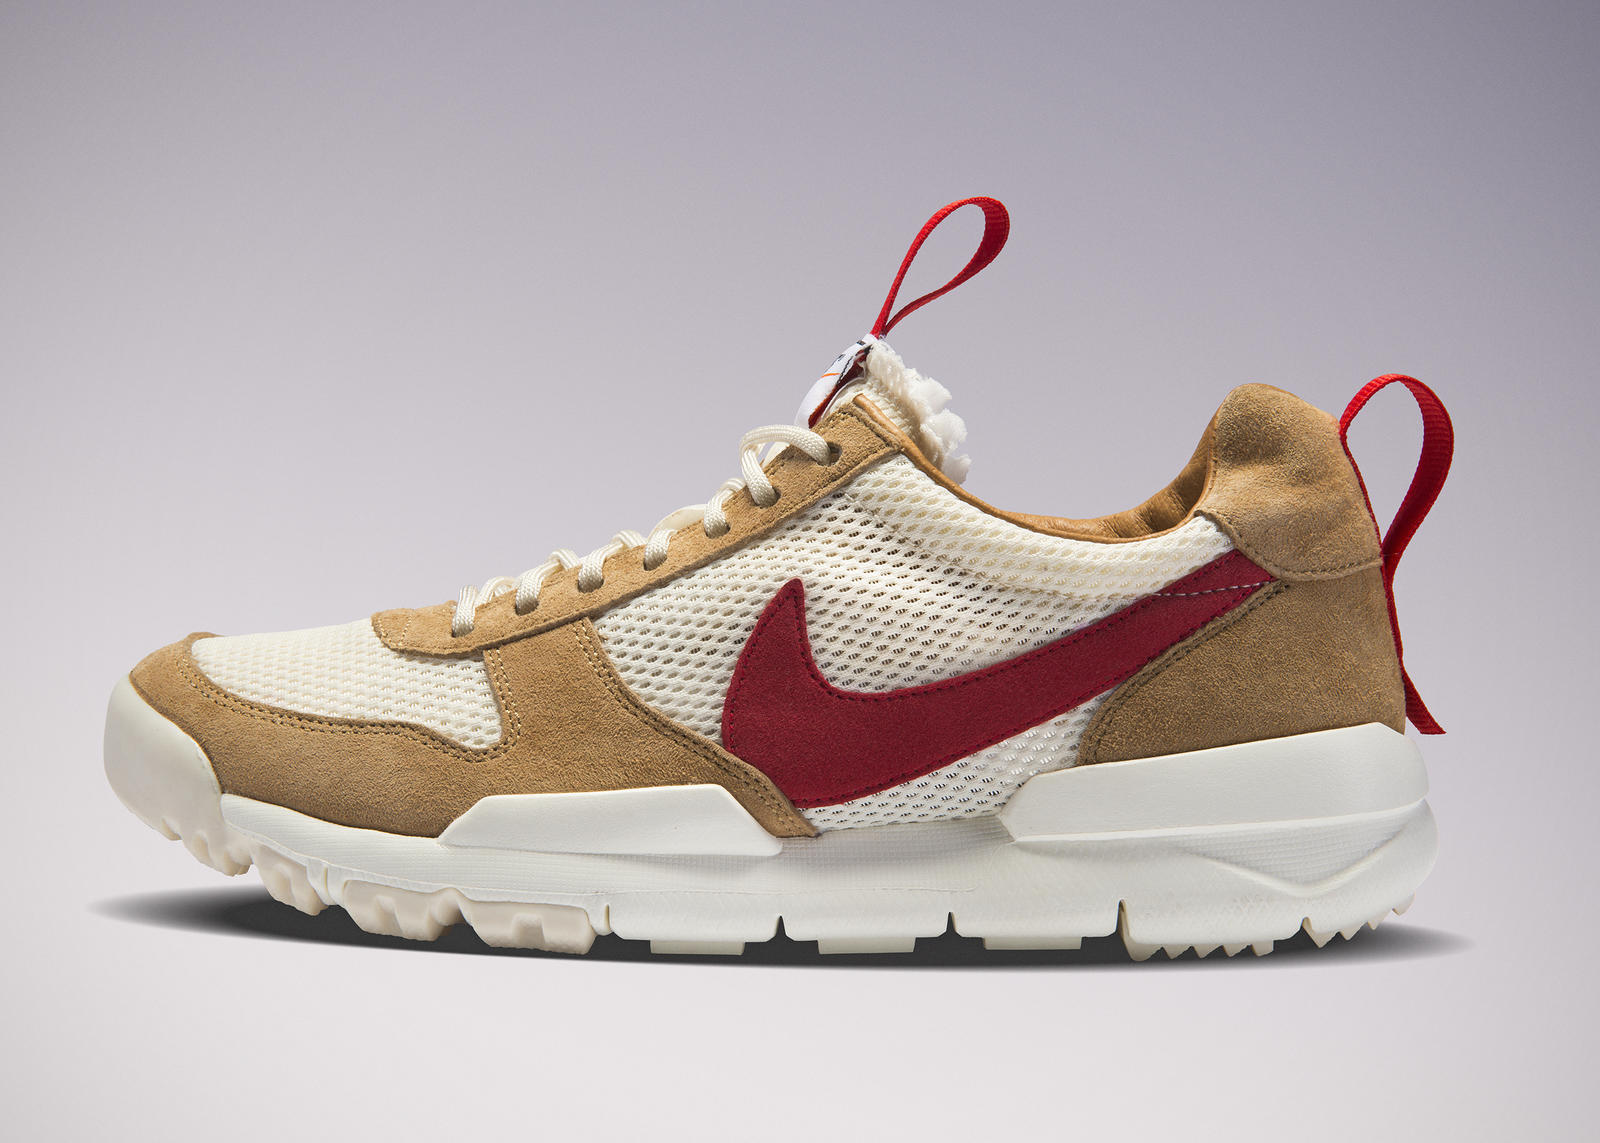 consultor Mecánico Chimenea  Nike and Tom Sachs Introduce the NikeCraft Mars Yard 2.0 - Nike News